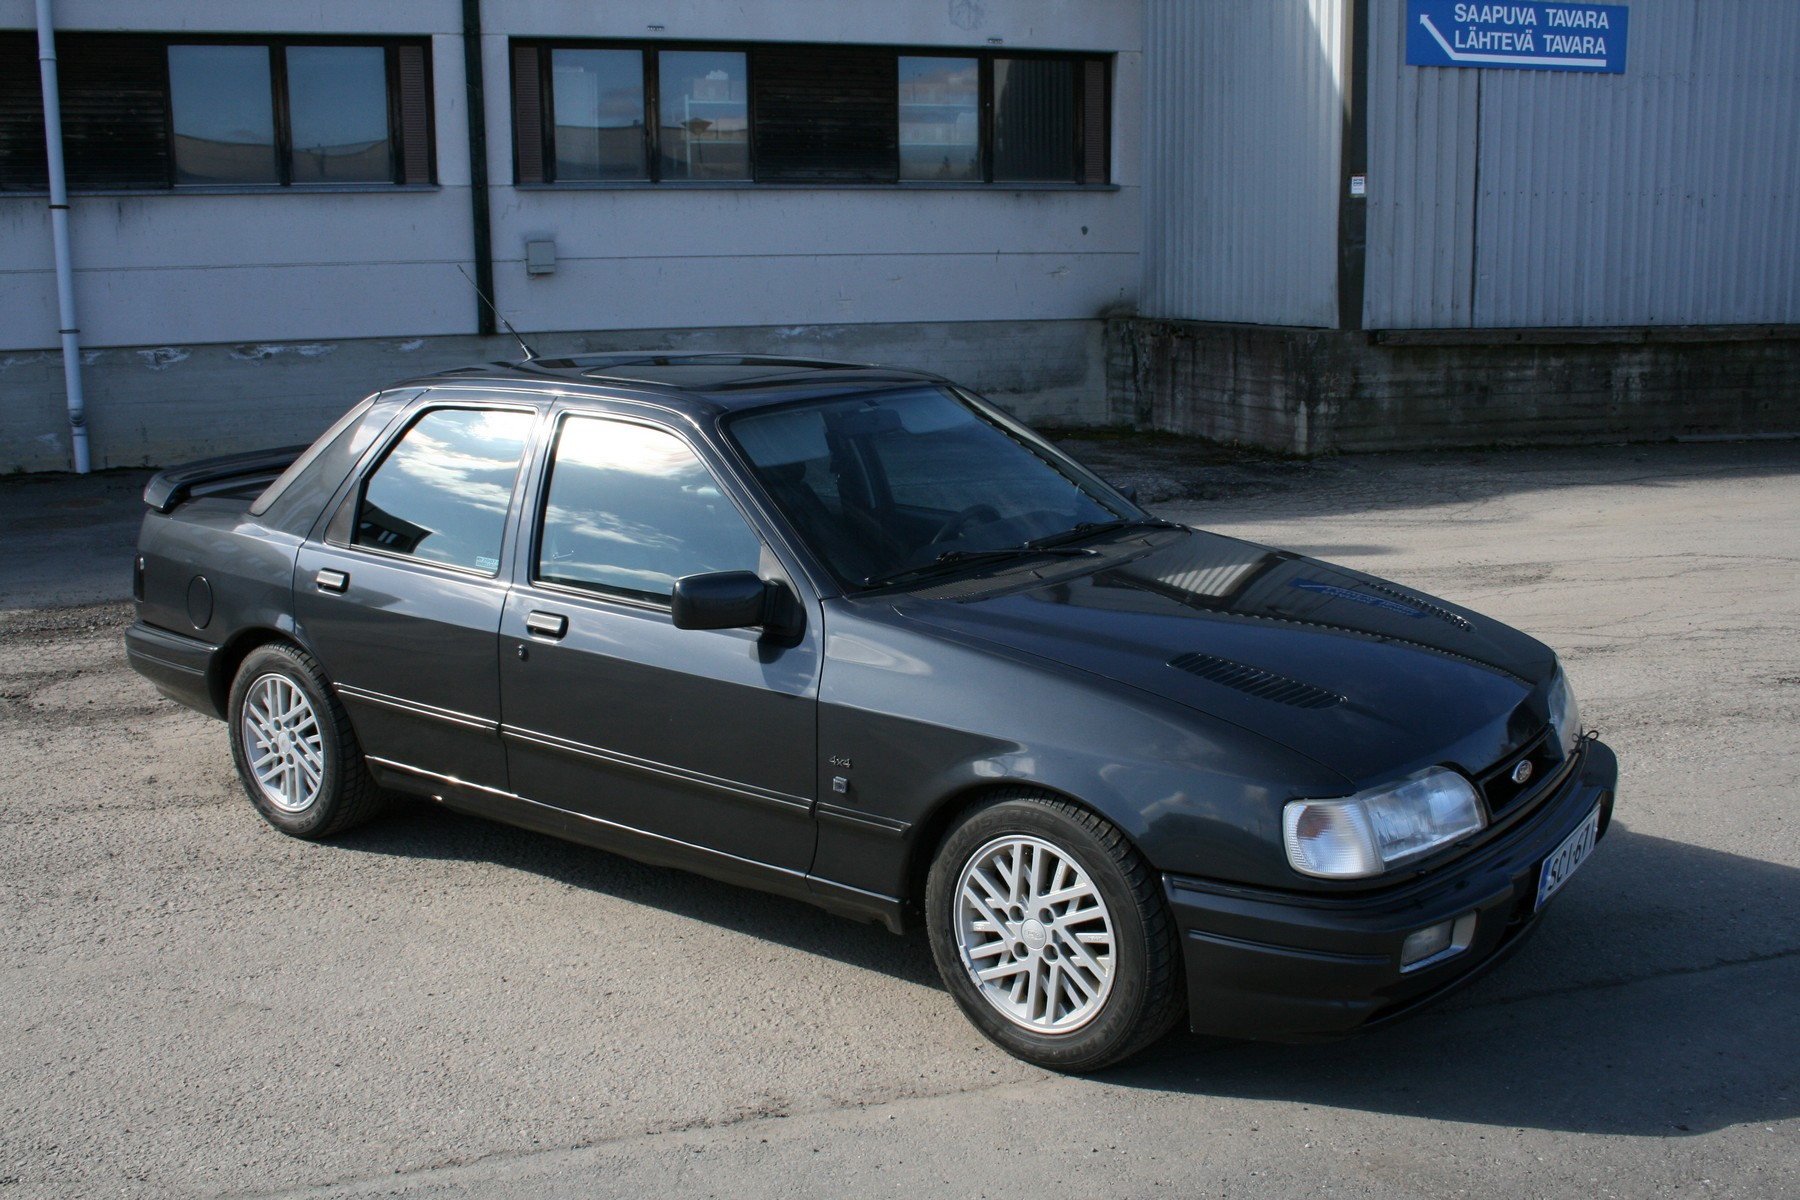 ford sierra sapphire cosworth 4x4 photos reviews news specs buy car. Black Bedroom Furniture Sets. Home Design Ideas